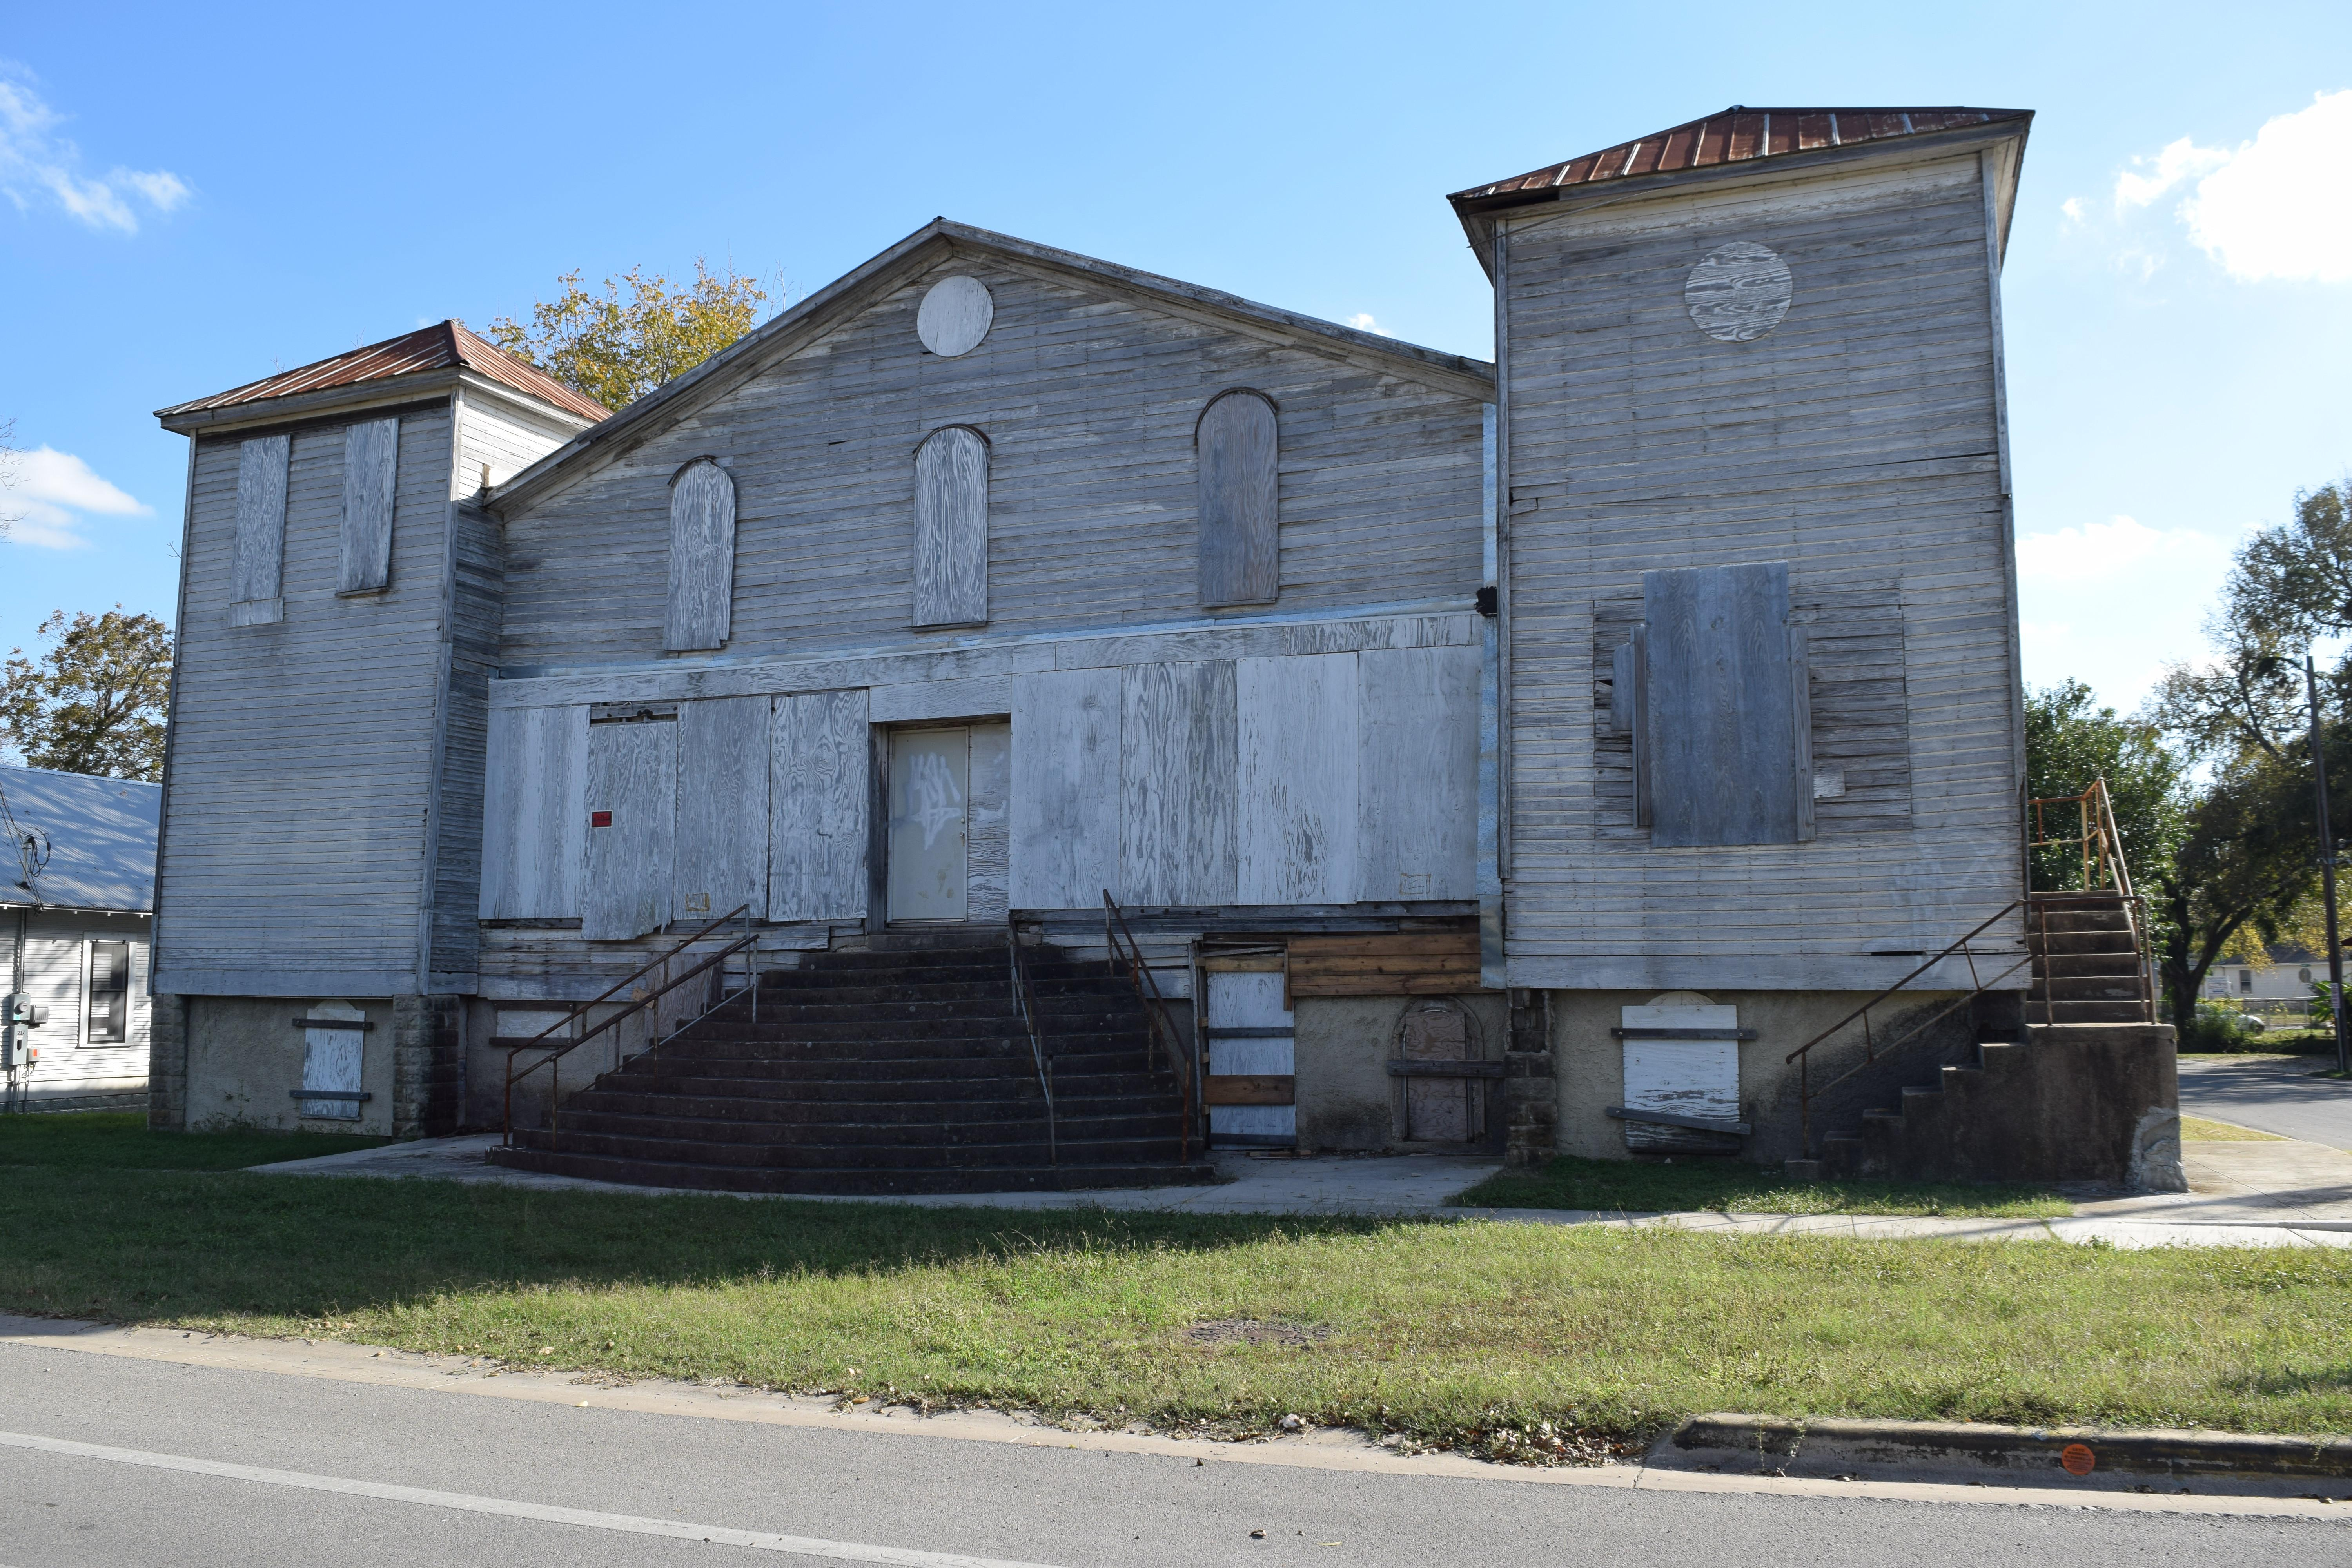 Grant to help fund preservation of Old First Baptist Church